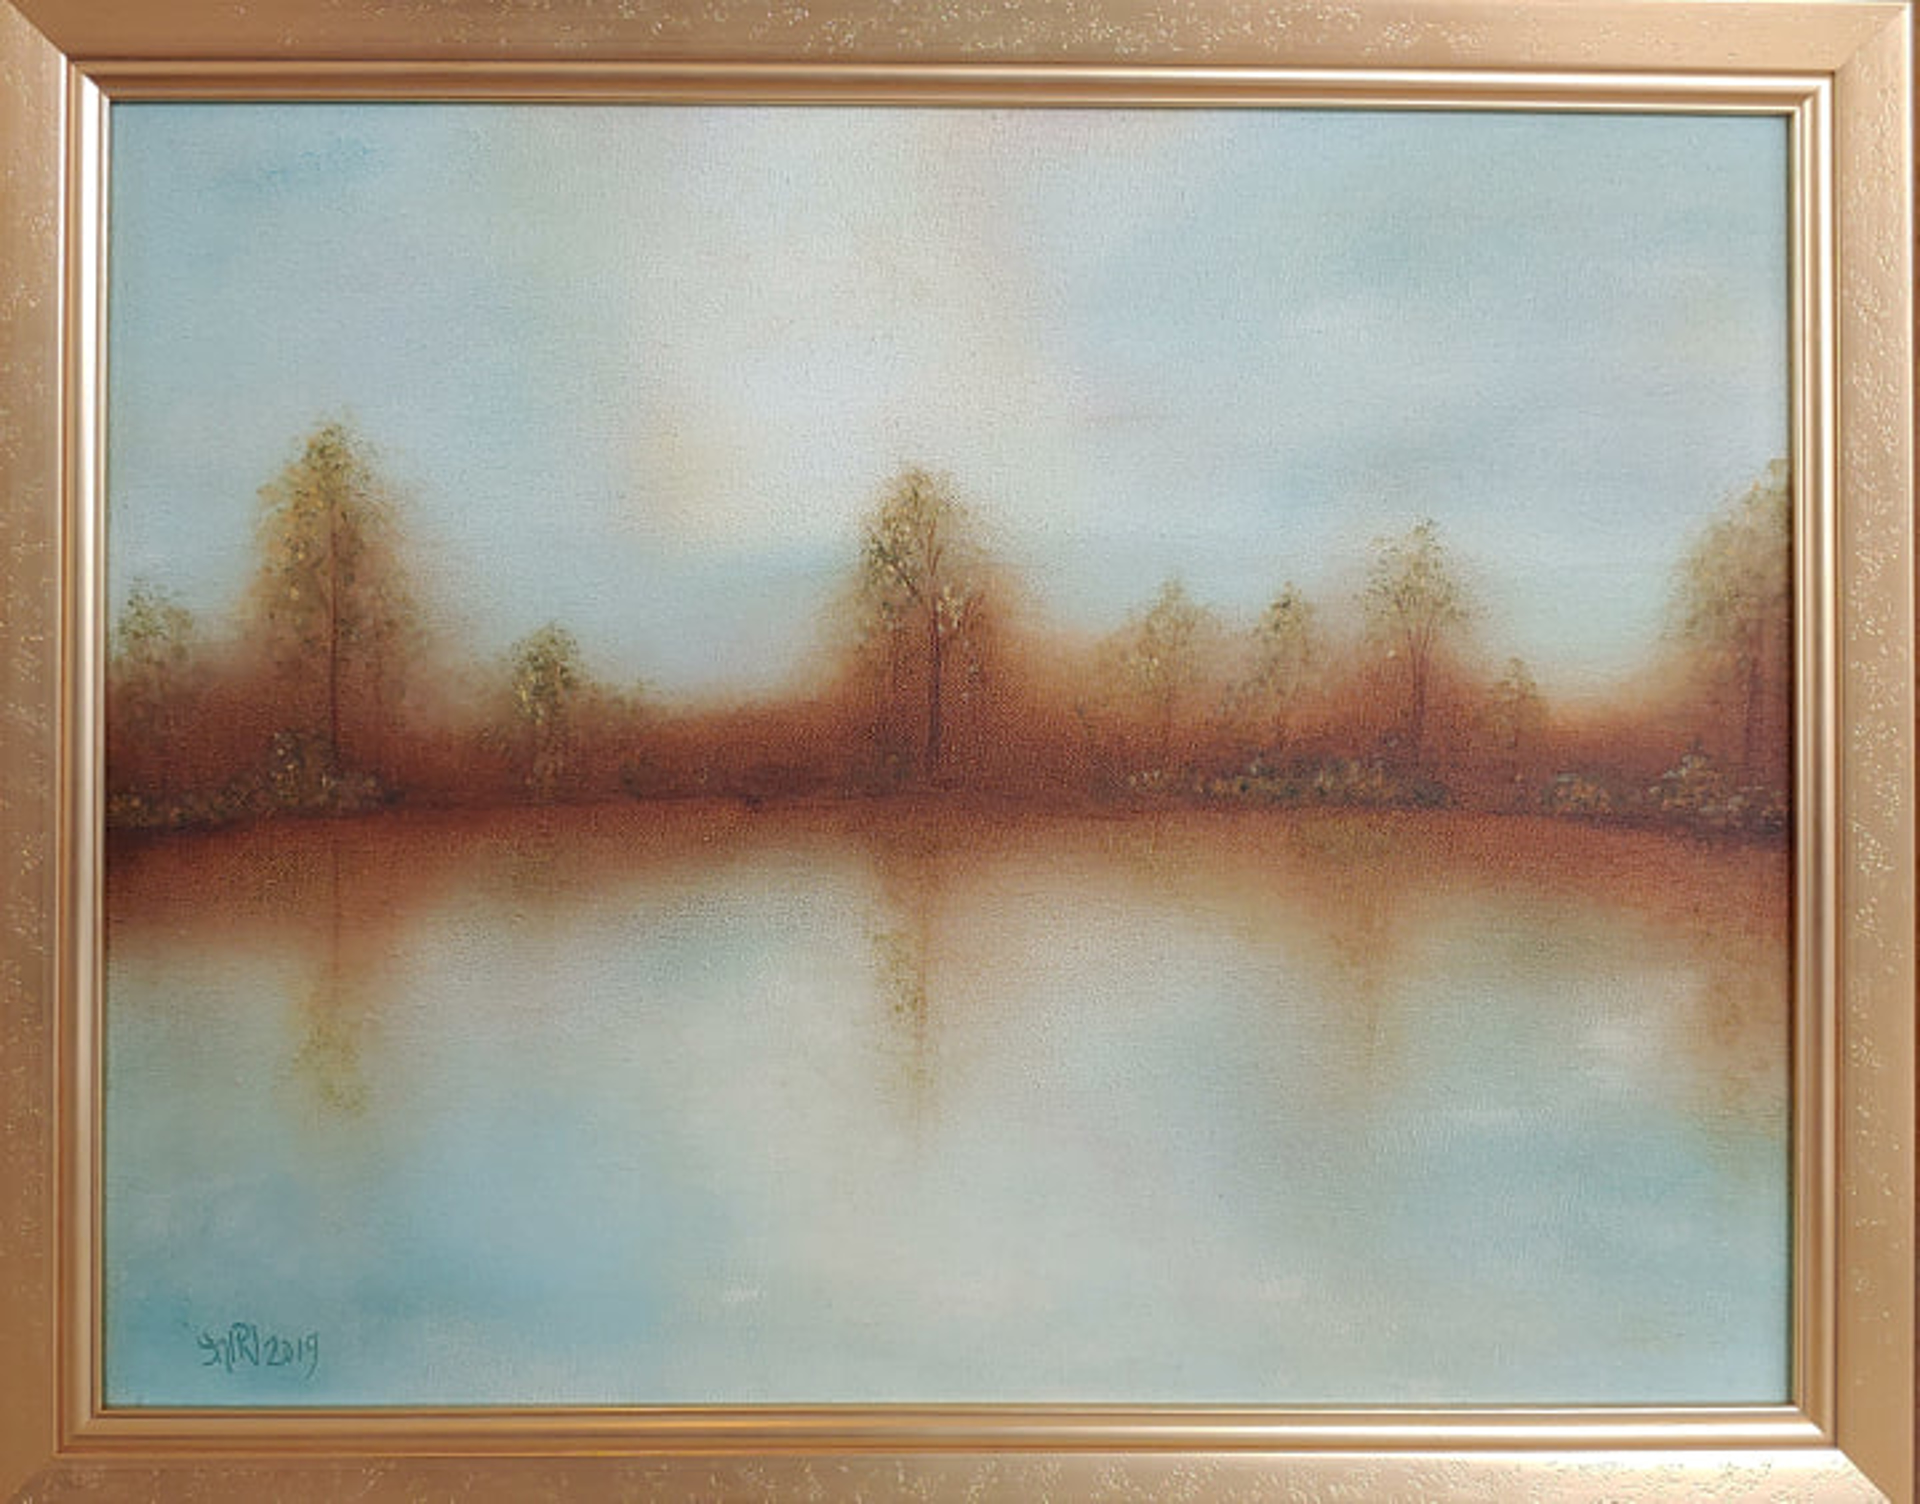 Lake View by Shirley Hays (Yamhill, OR)